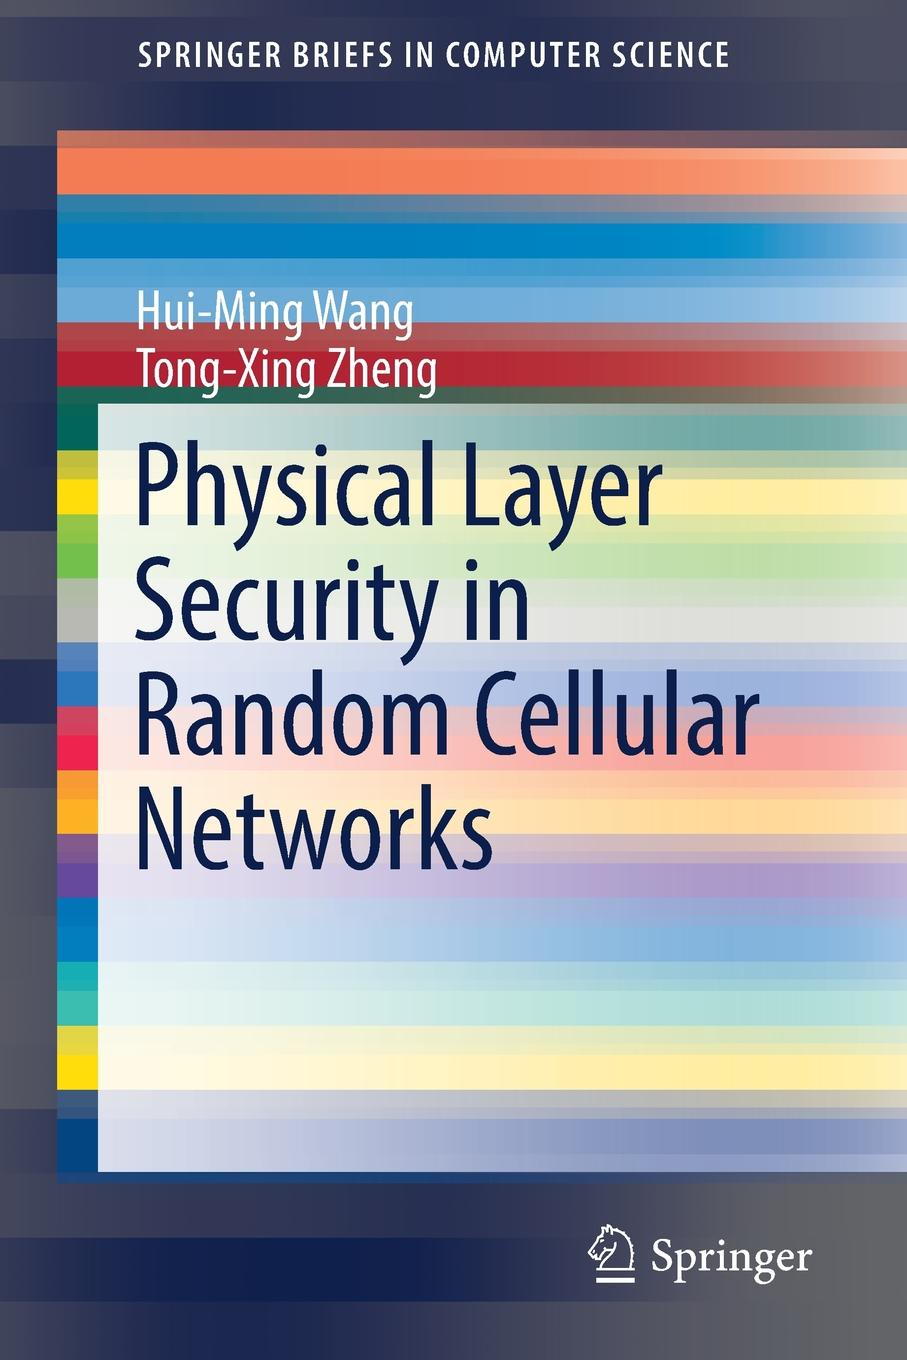 лучшая цена Hui-Ming Wang, Tong-Xing Zheng Physical Layer Security in Random Cellular Networks